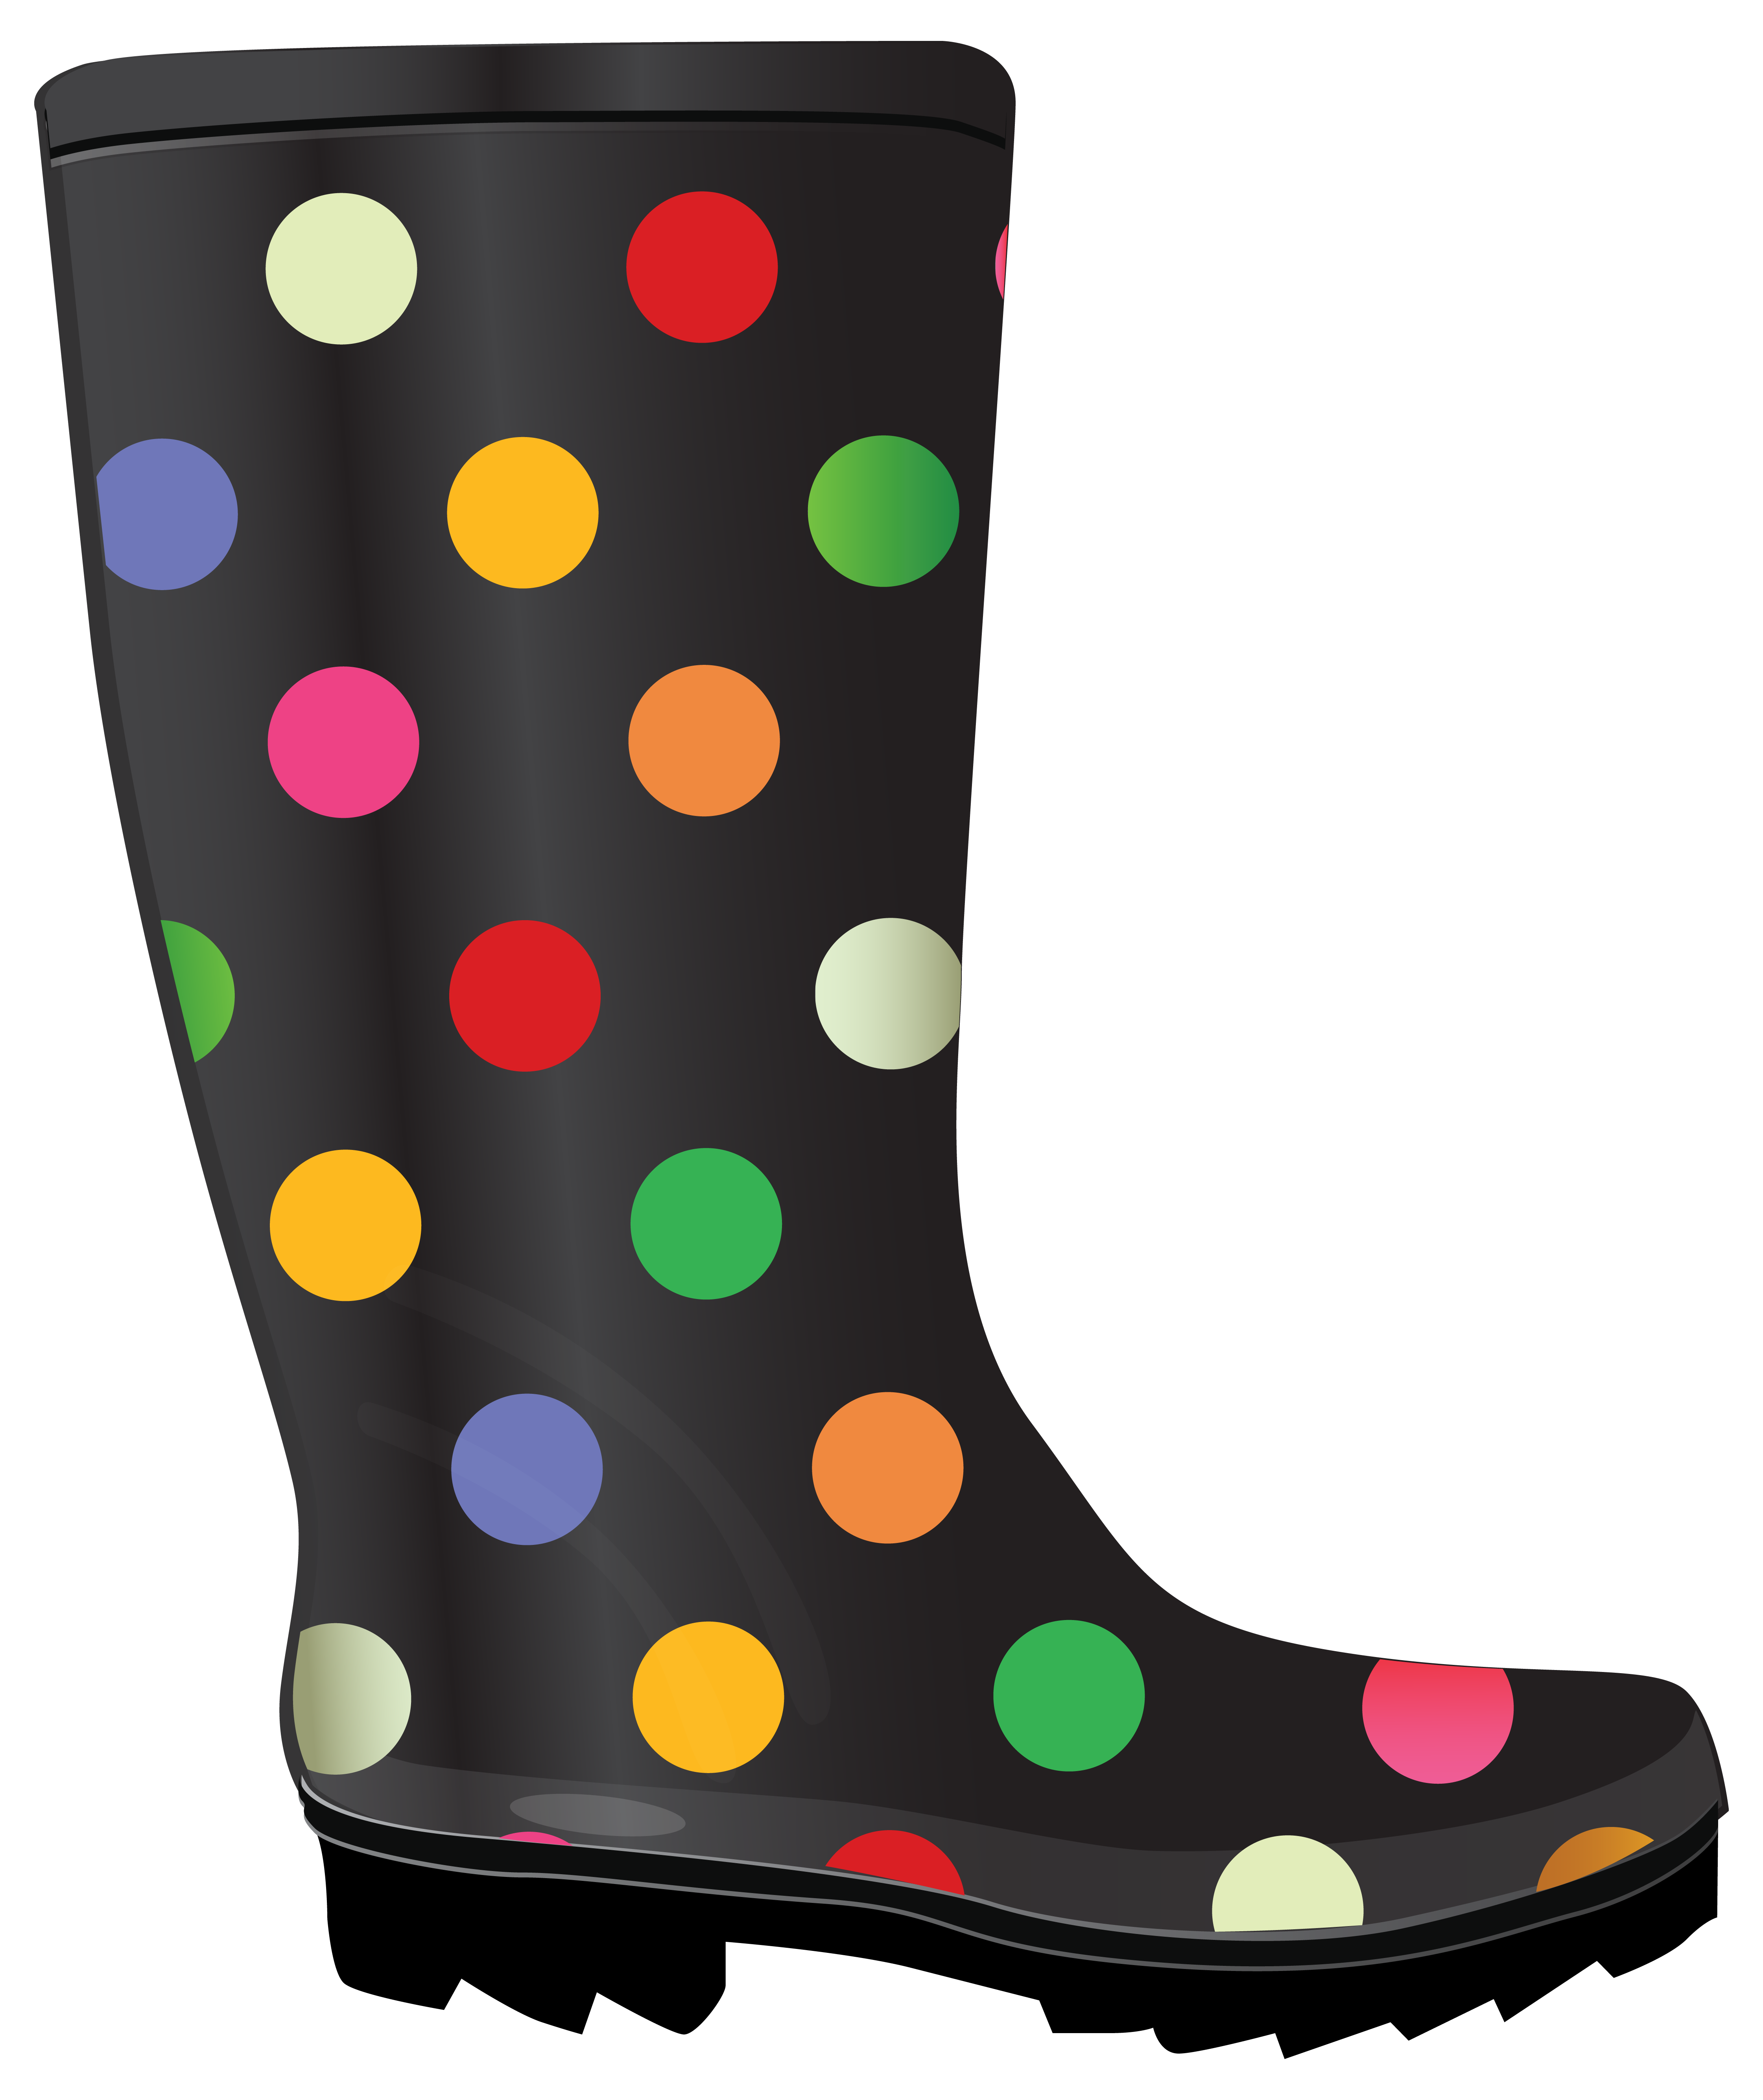 Dotted rubber boots png. Boot clipart transparent background